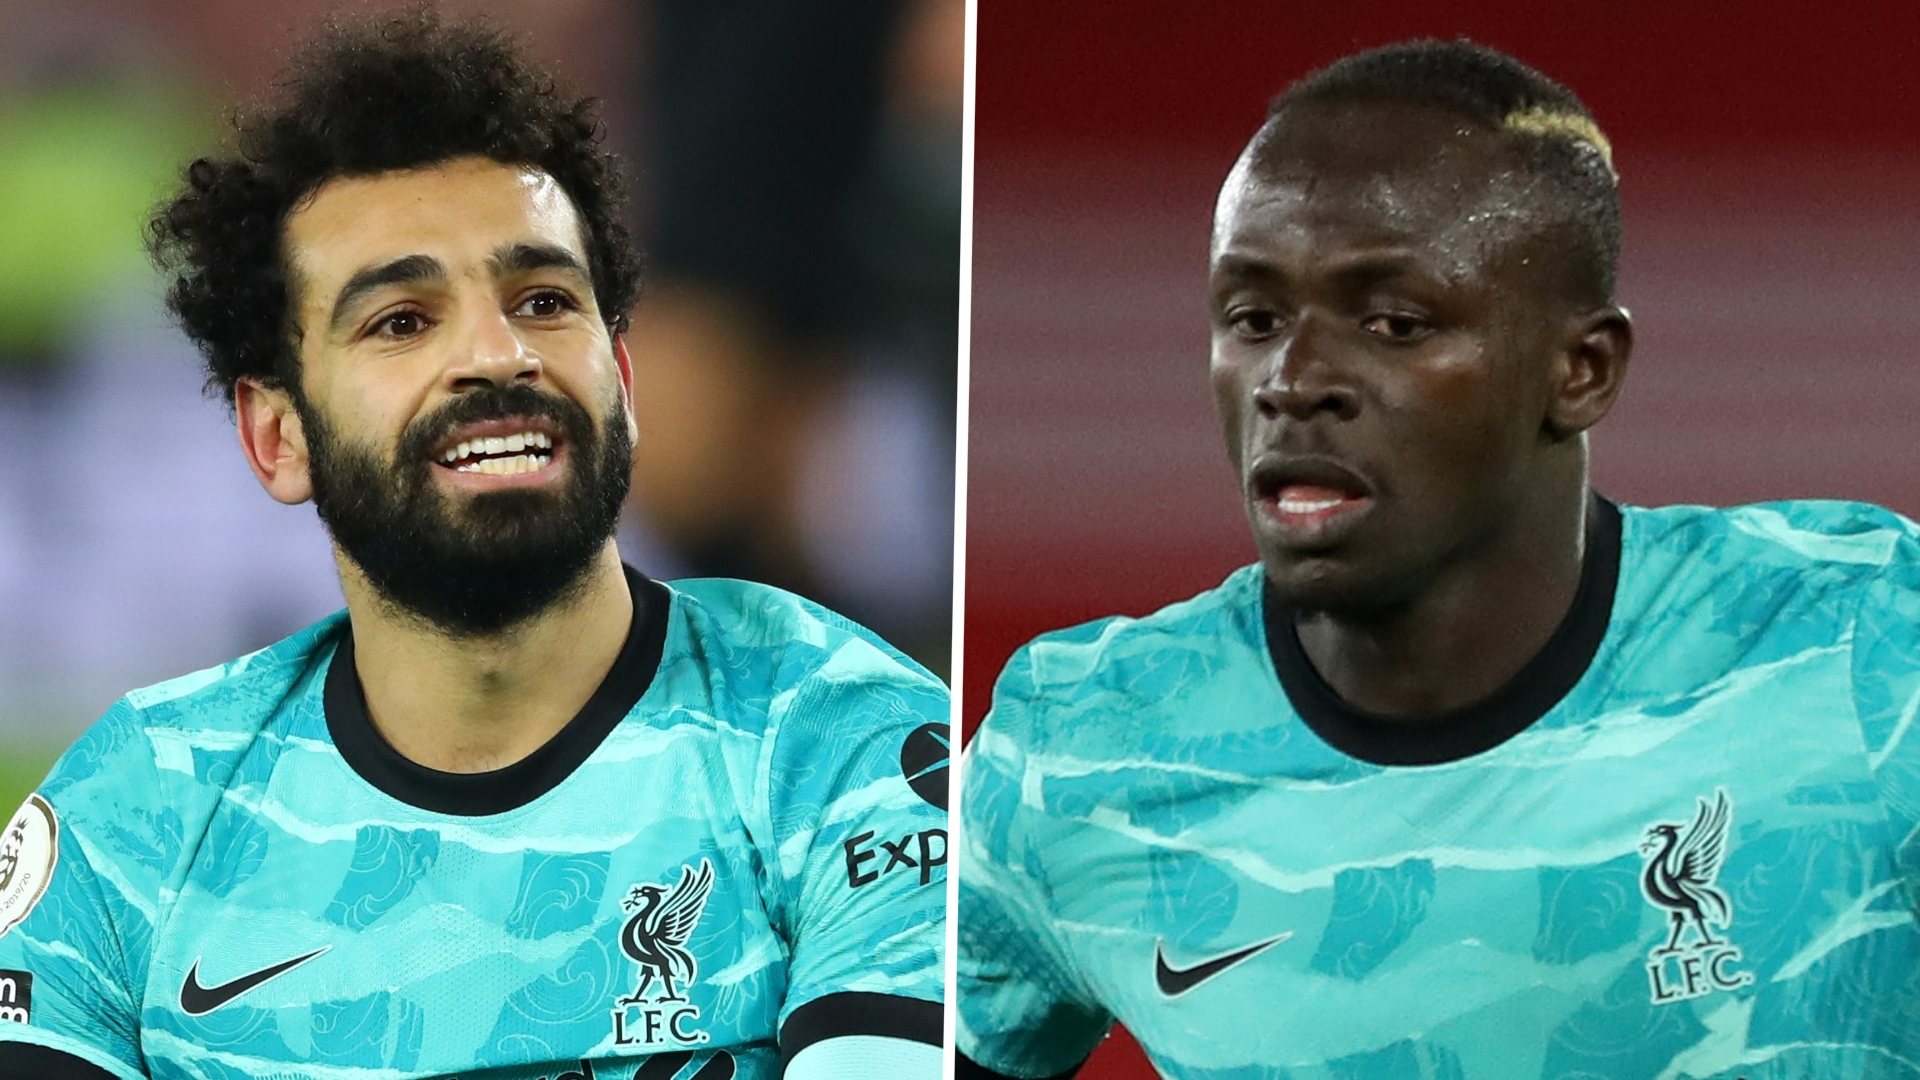 Klopp vows to get Liverpool forwards firing again after seeing Salah bag a brace against Man Utd